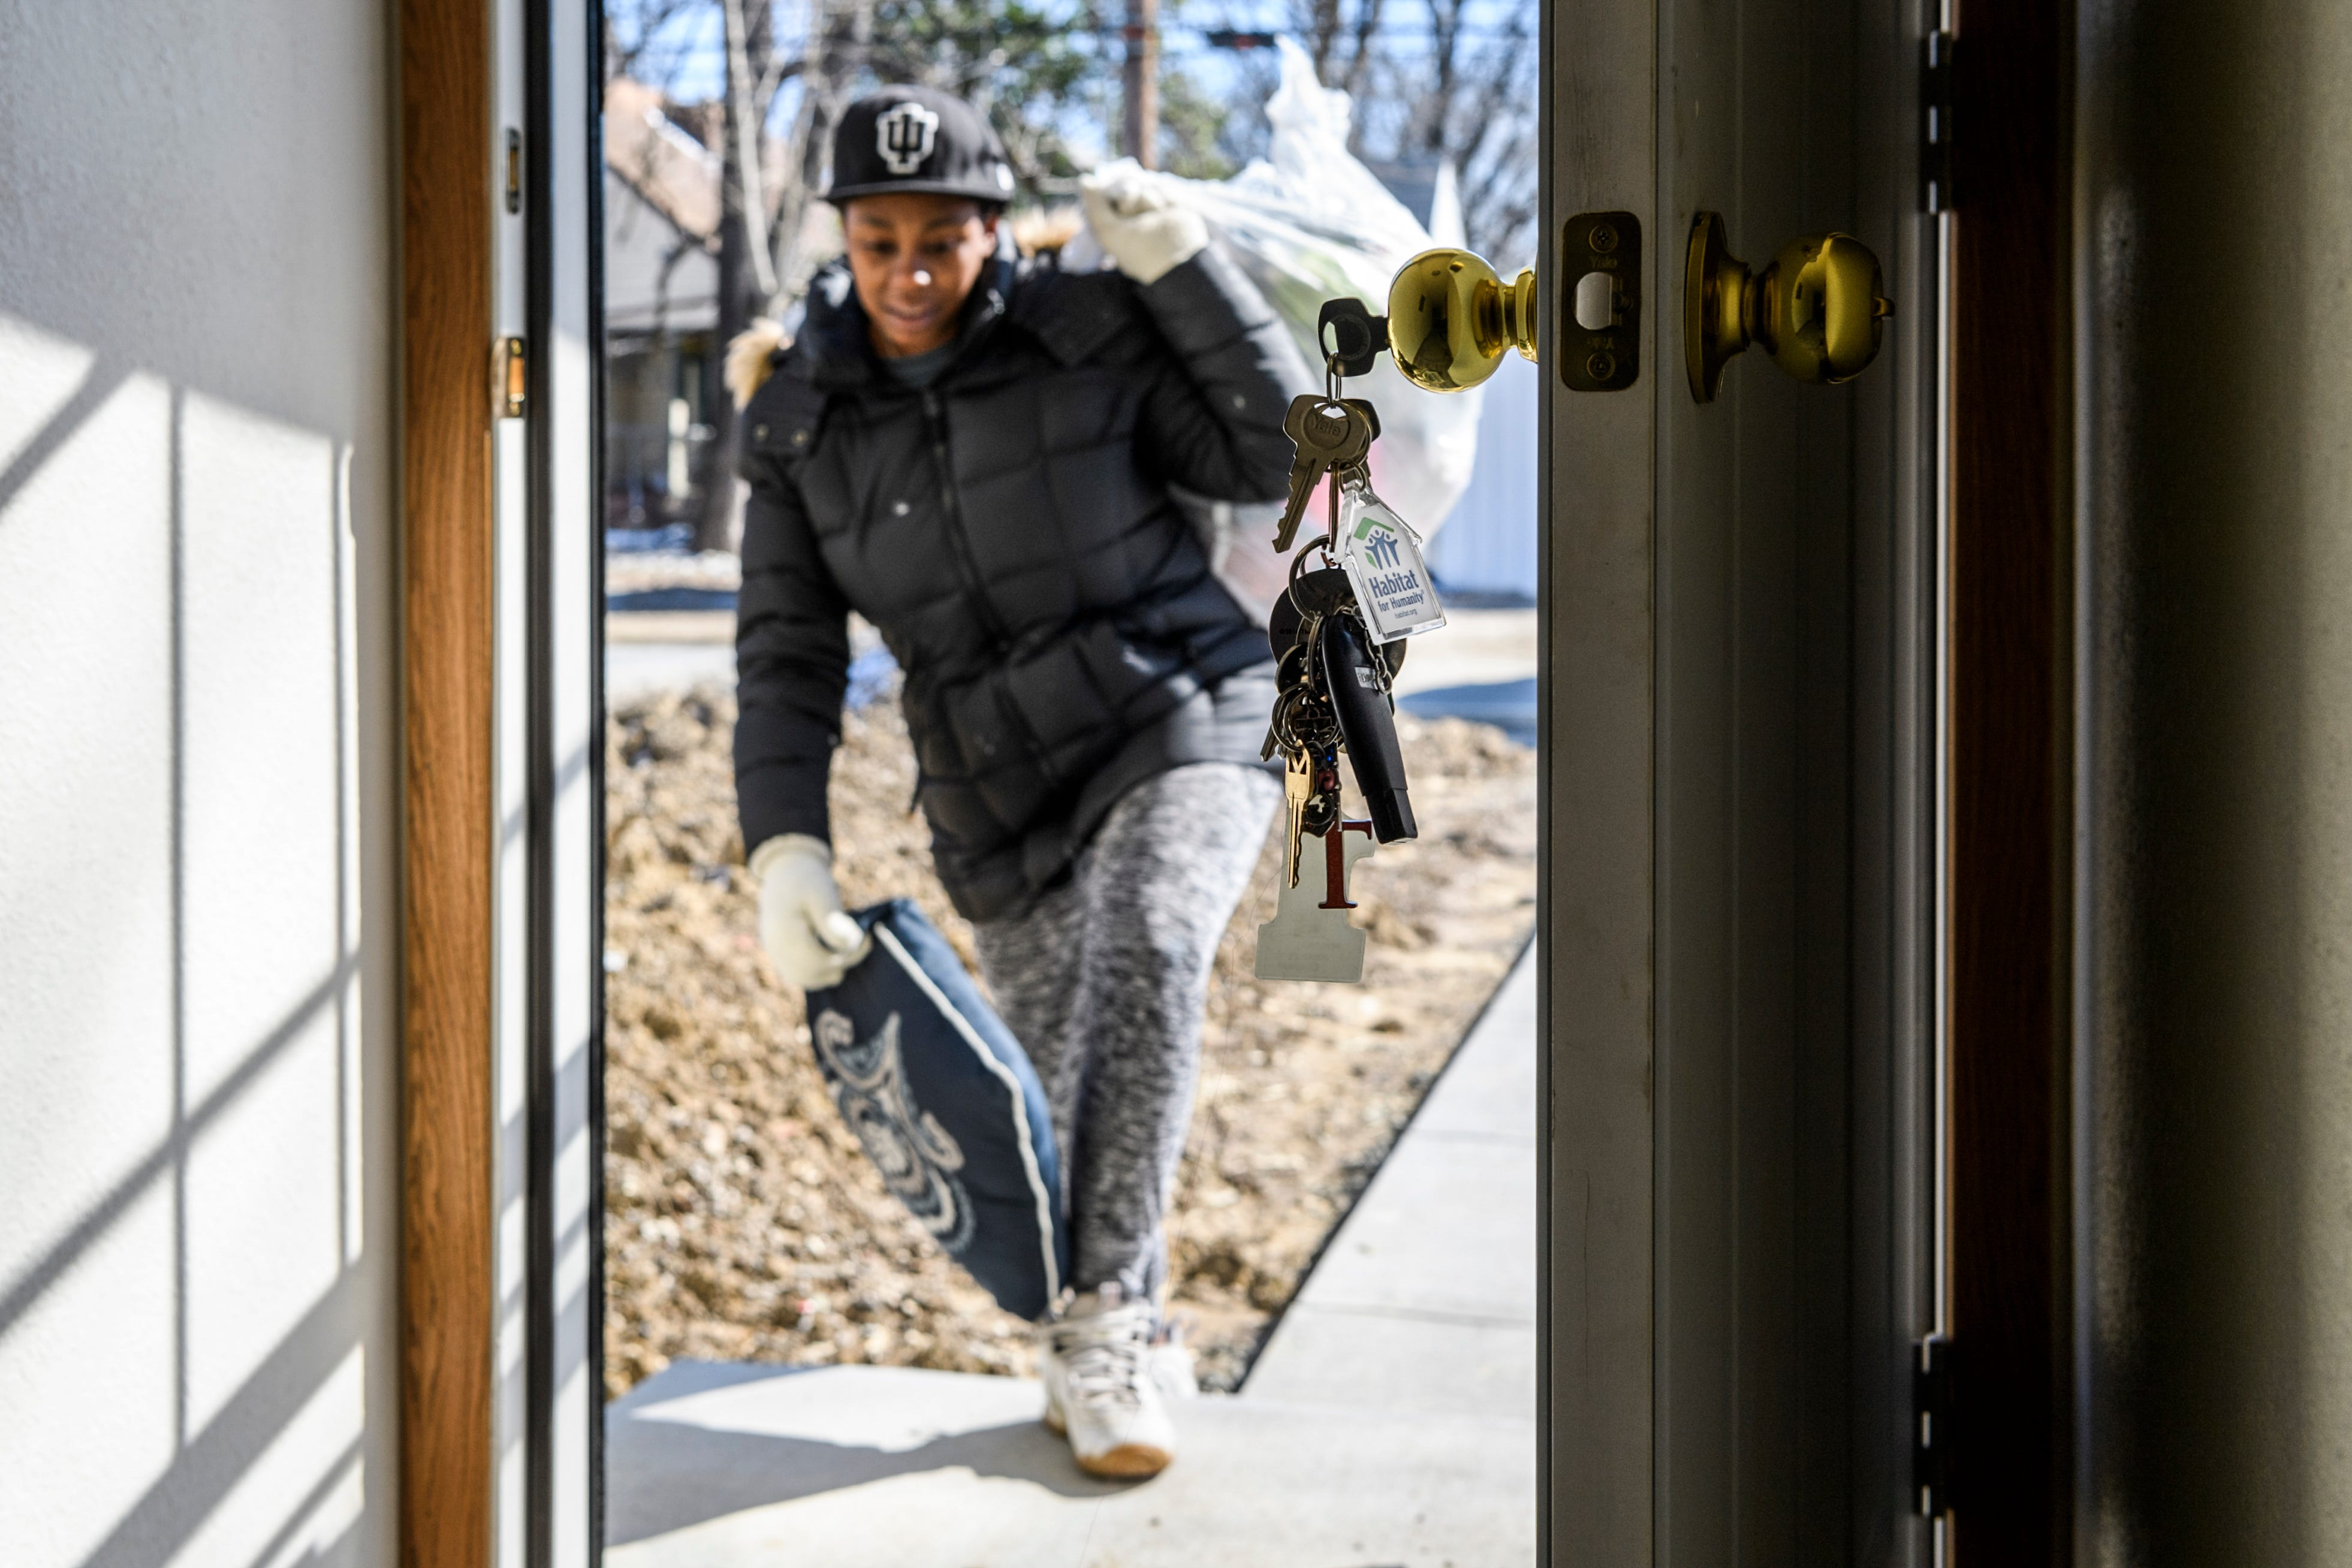 Keys featuring a house-shaped keychain with the Habitat for Humanity logo dangle from the back door as Tamisha Dilworth carries a pillow and a bag full of clothes into her new house, Monday morning, March 4, 2019. She promptly began moving her family's items into their new space after signing paperwork and receiving the keys.